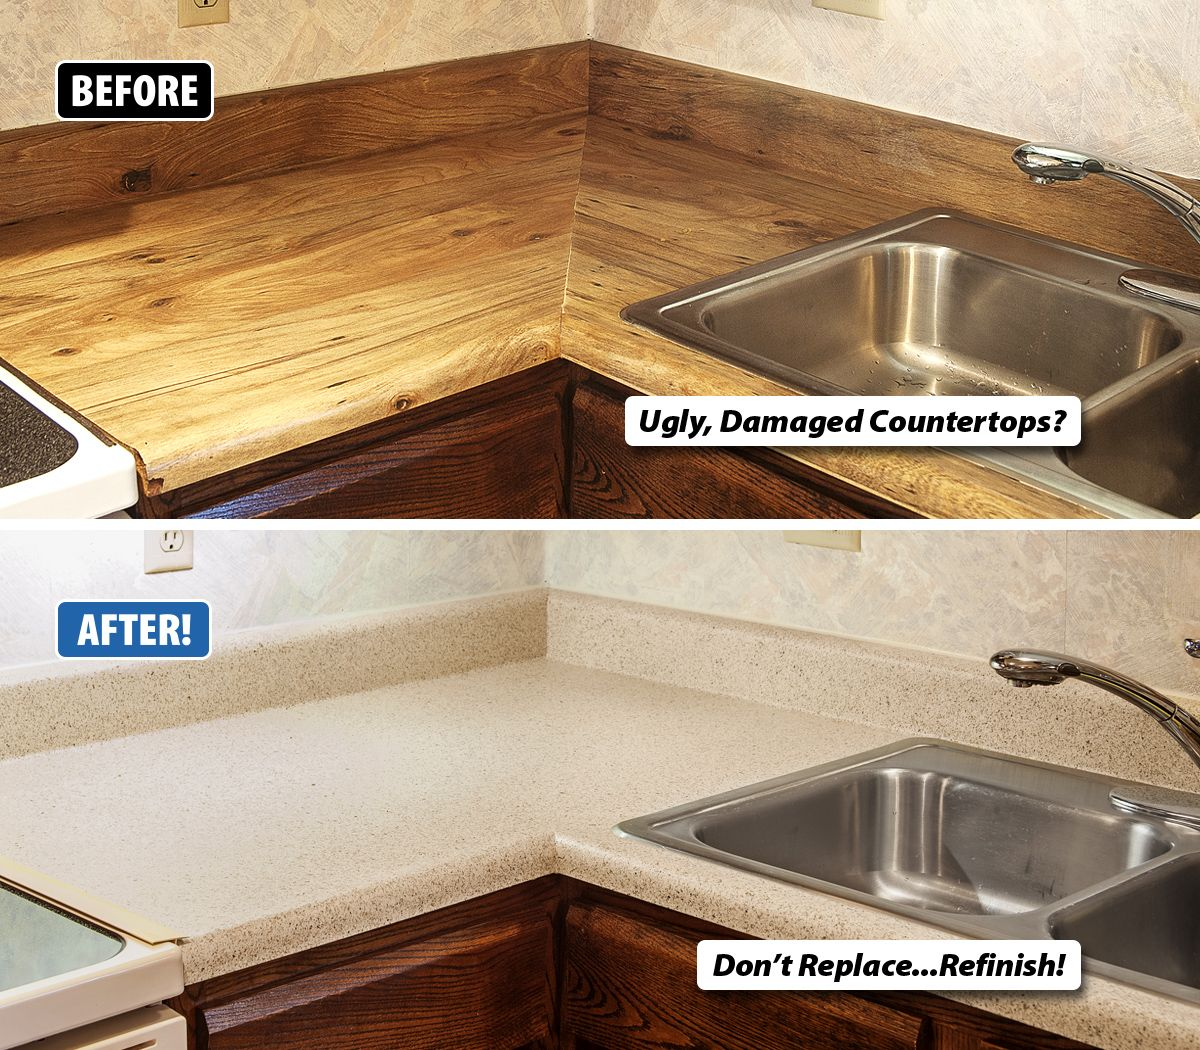 How To Repair A Chip In Granite Countertop Are Your Countertops Chipped Damaged Or Just Plain Ugly